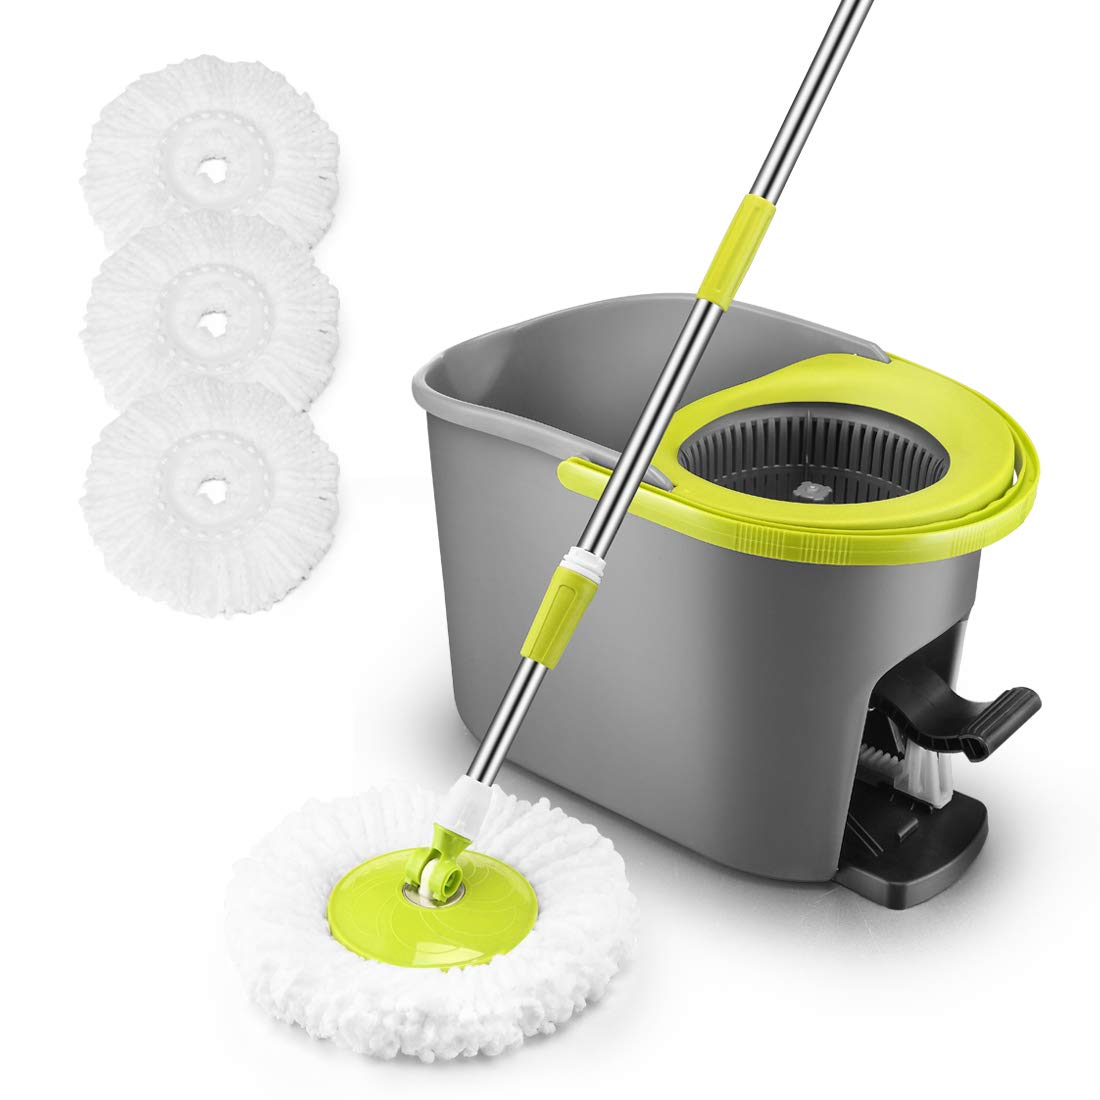 360 Spin Mop and Bucket System with Wringer Set, Floor Cleaning Mop for Tile/Hardwood/Laminate with 3 Deep-Cleaning Microfiber Mop Head Replacements and 1pc Durable Mop Holder by TUOBA